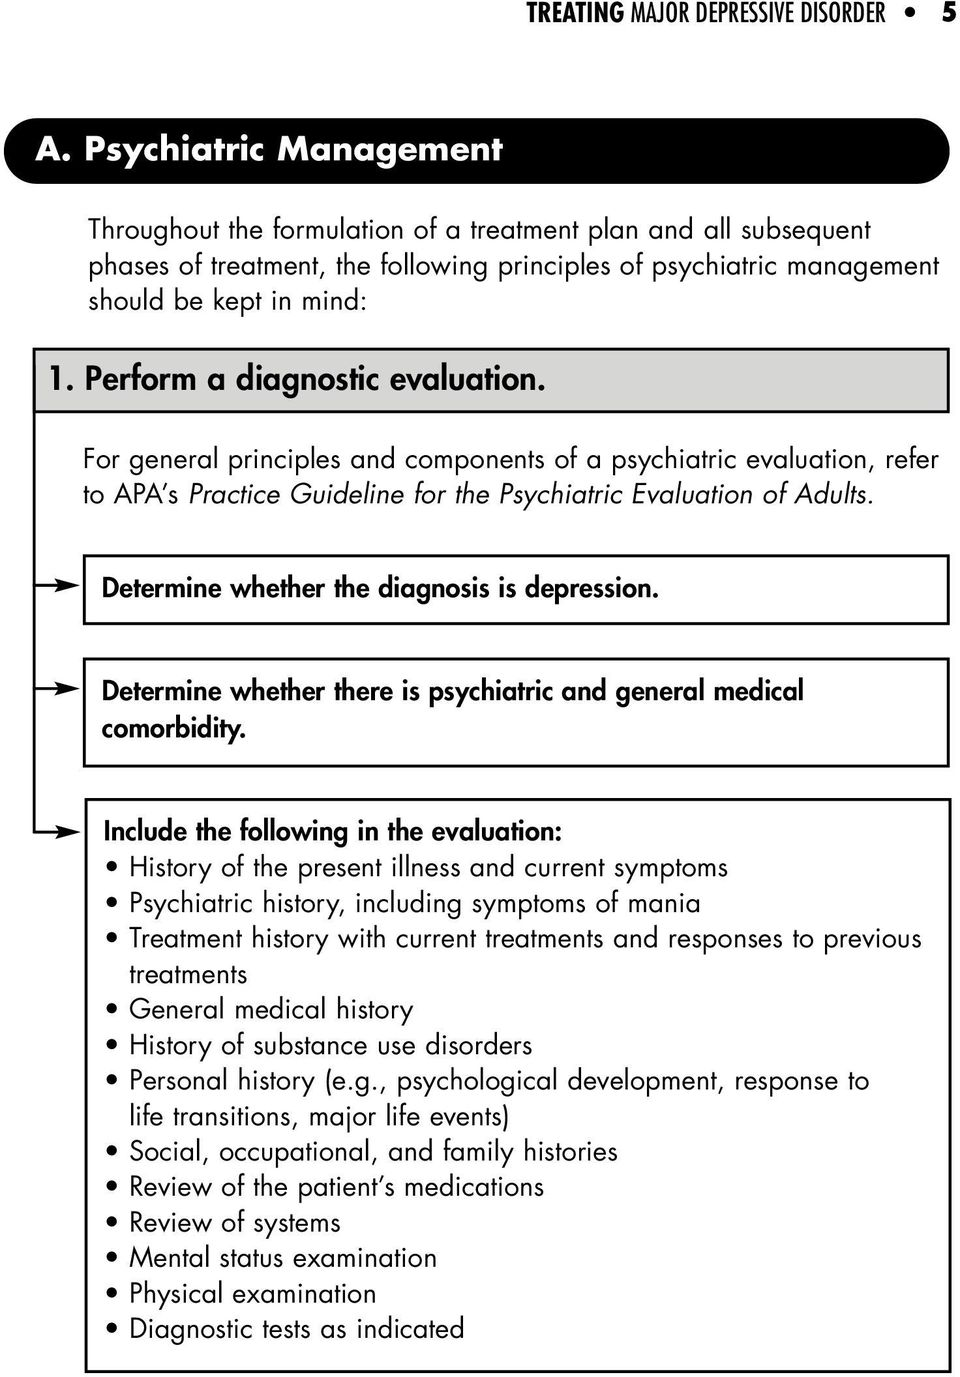 Perform a diagnostic evaluation. For general principles and components of a psychiatric evaluation, refer to APA s Practice Guideline for the Psychiatric Evaluation of Adults.